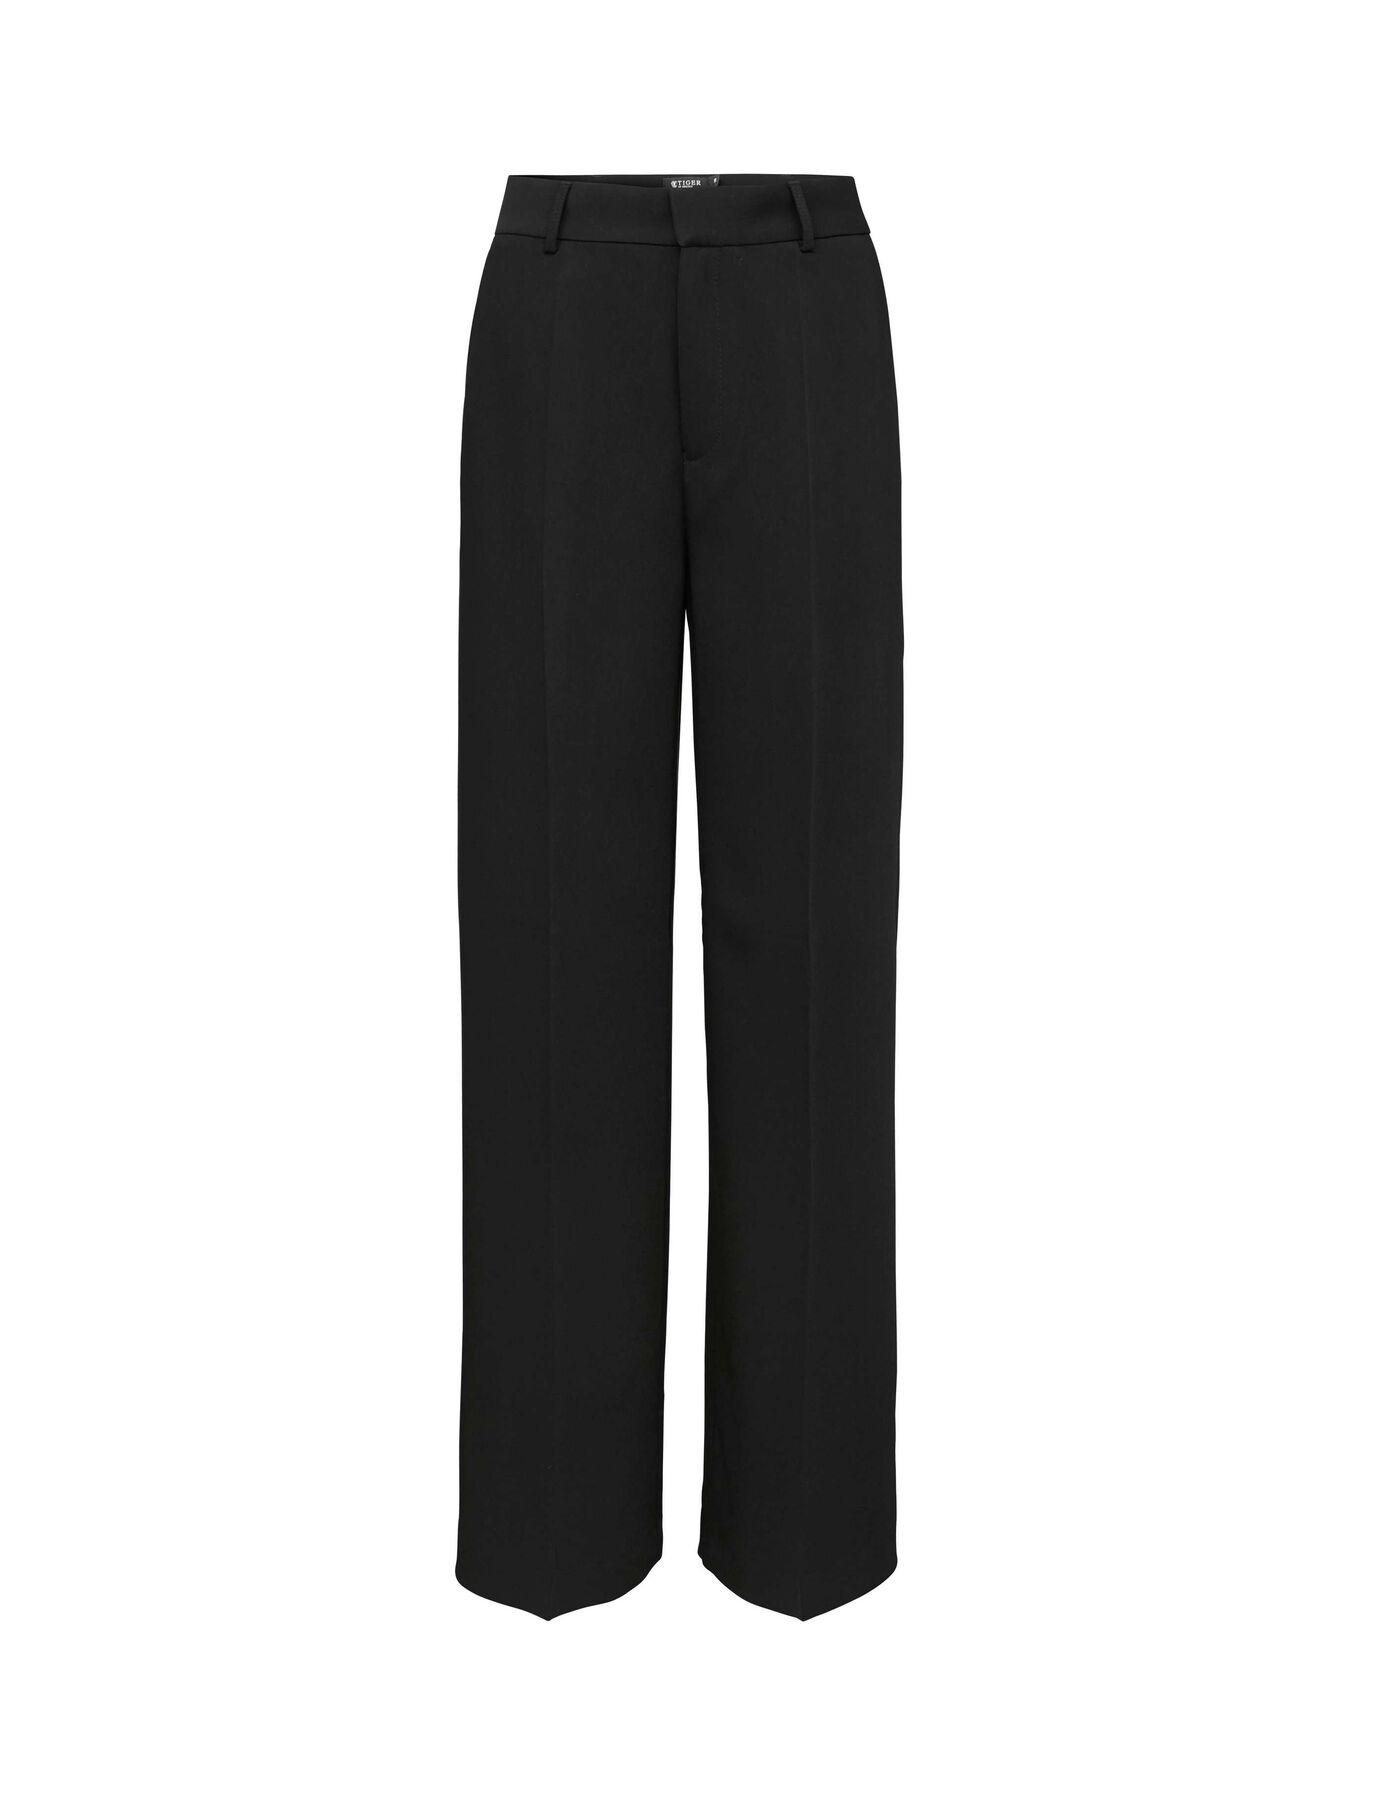 FLORALIS TROUSERS in Night Black from Tiger of Sweden